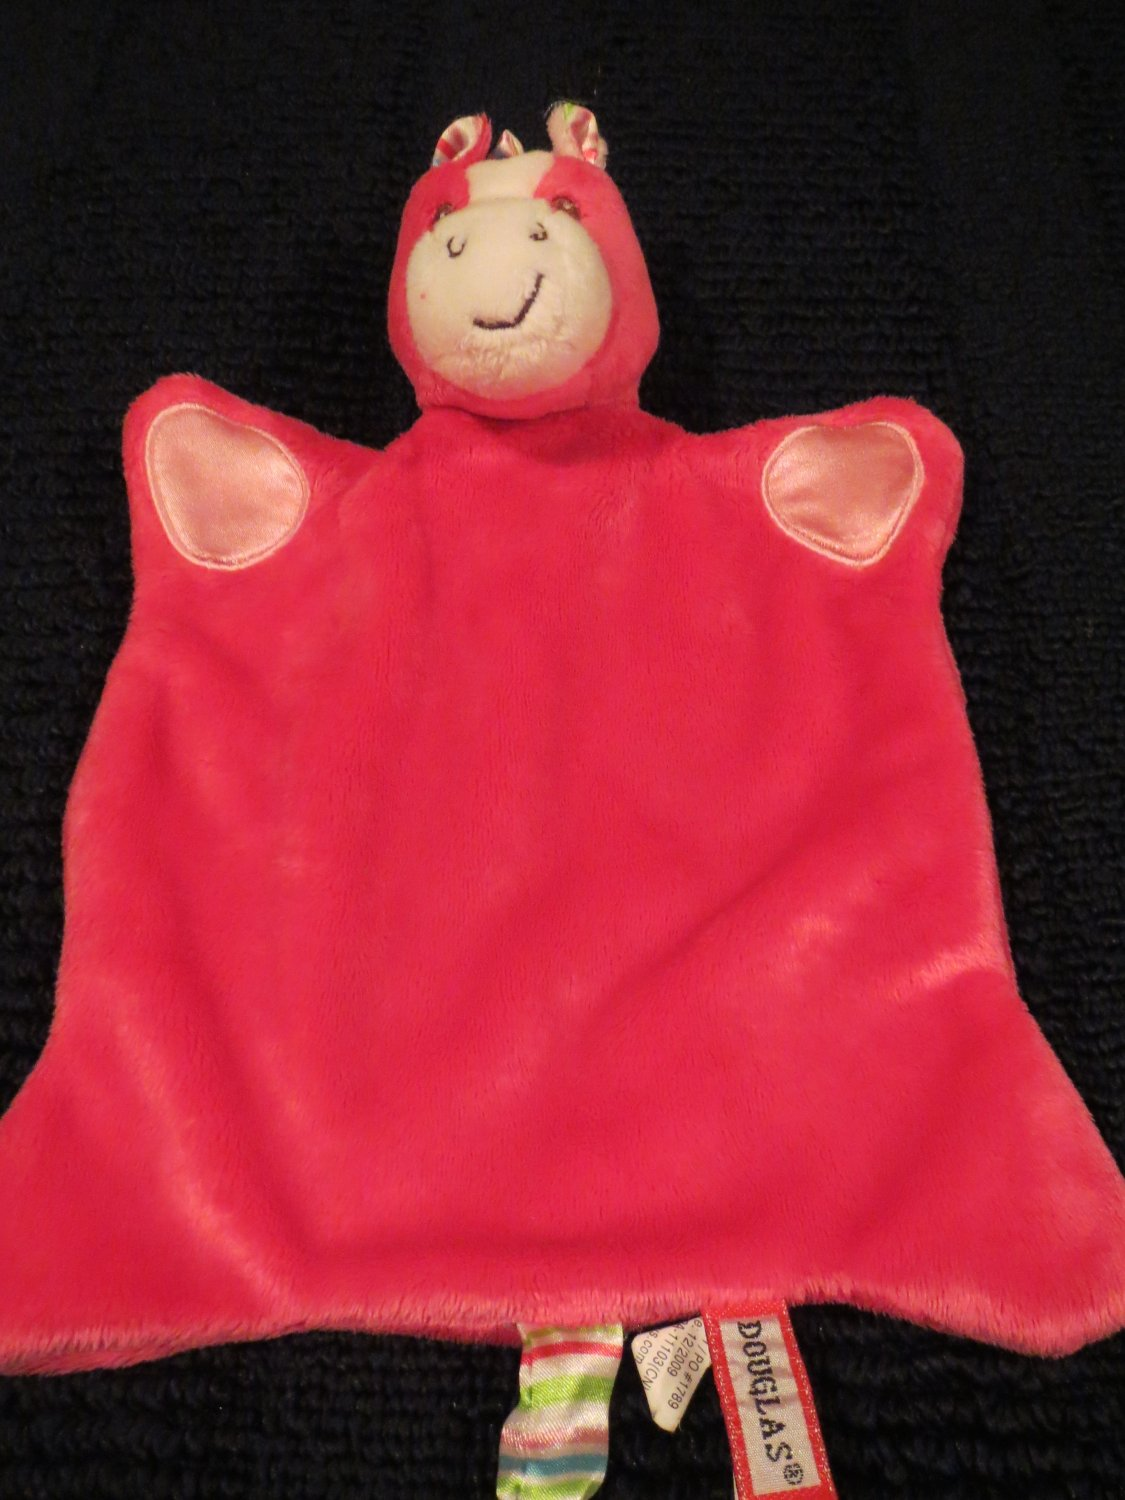 Douglas Cuddle Toy Pink Horse Security blanket